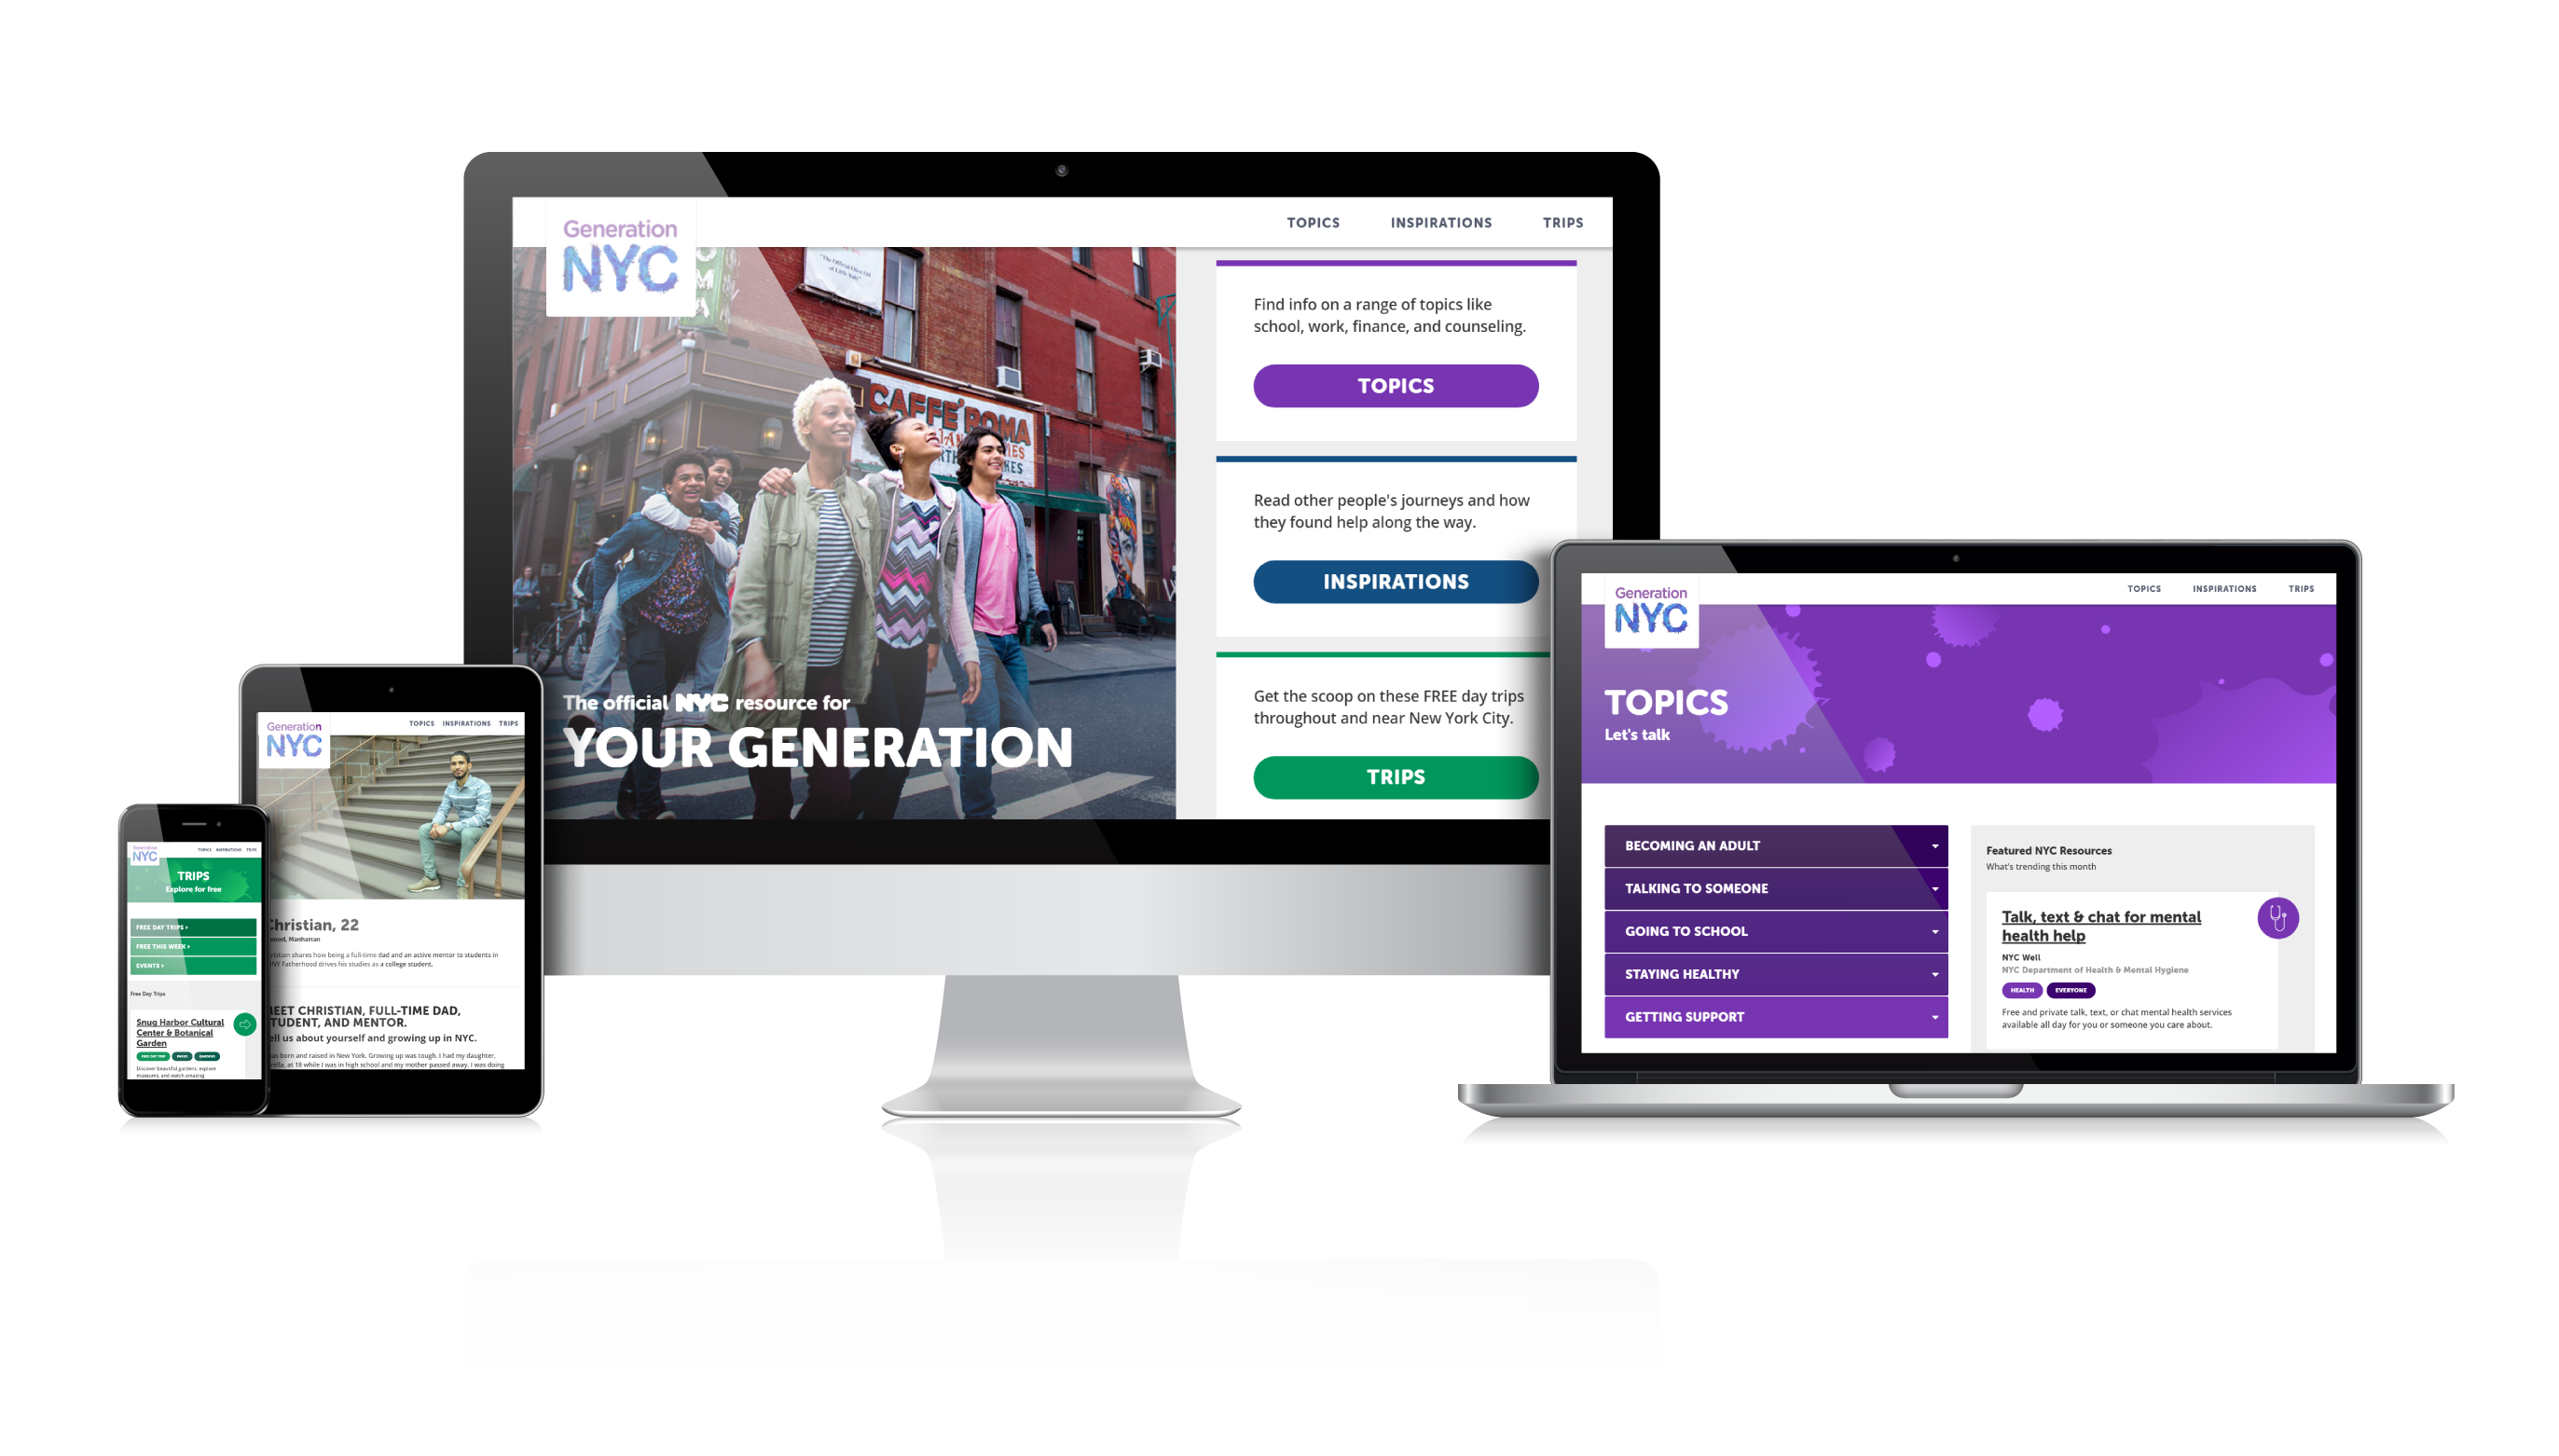 Generation NYC homepage